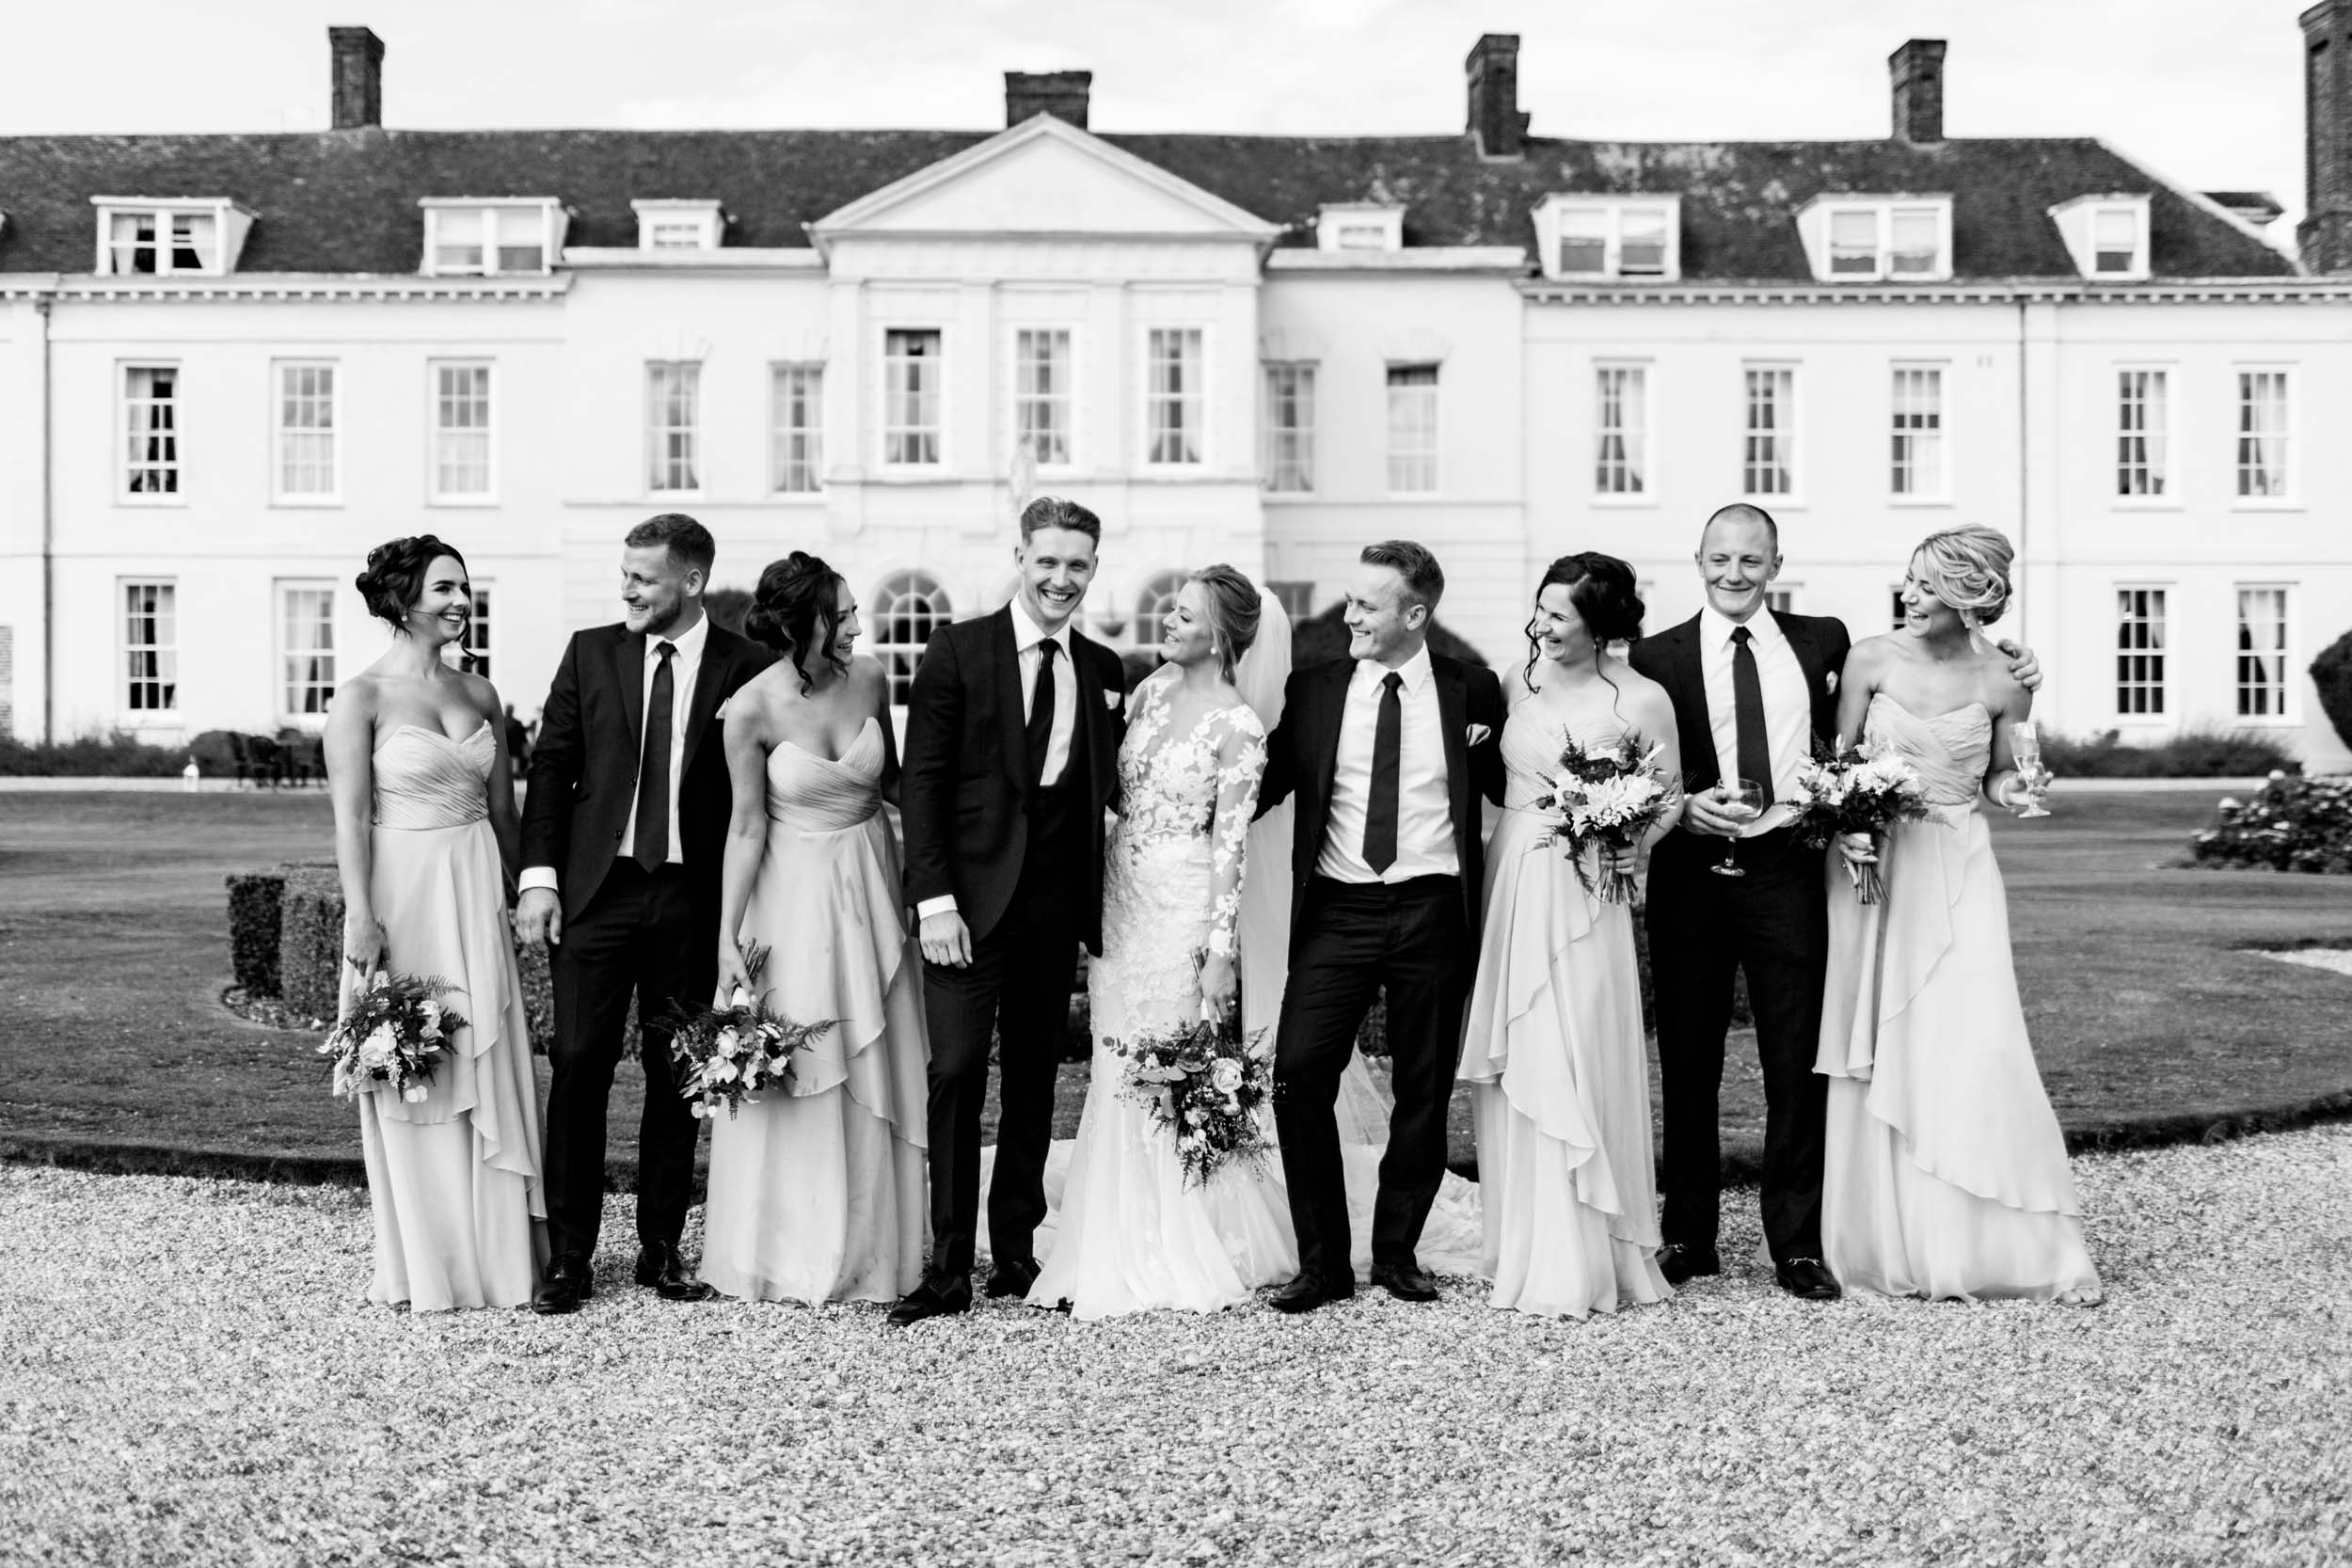 Gosfield Hall Wedding Photography Surrey Luxury Photographer 75.jpg